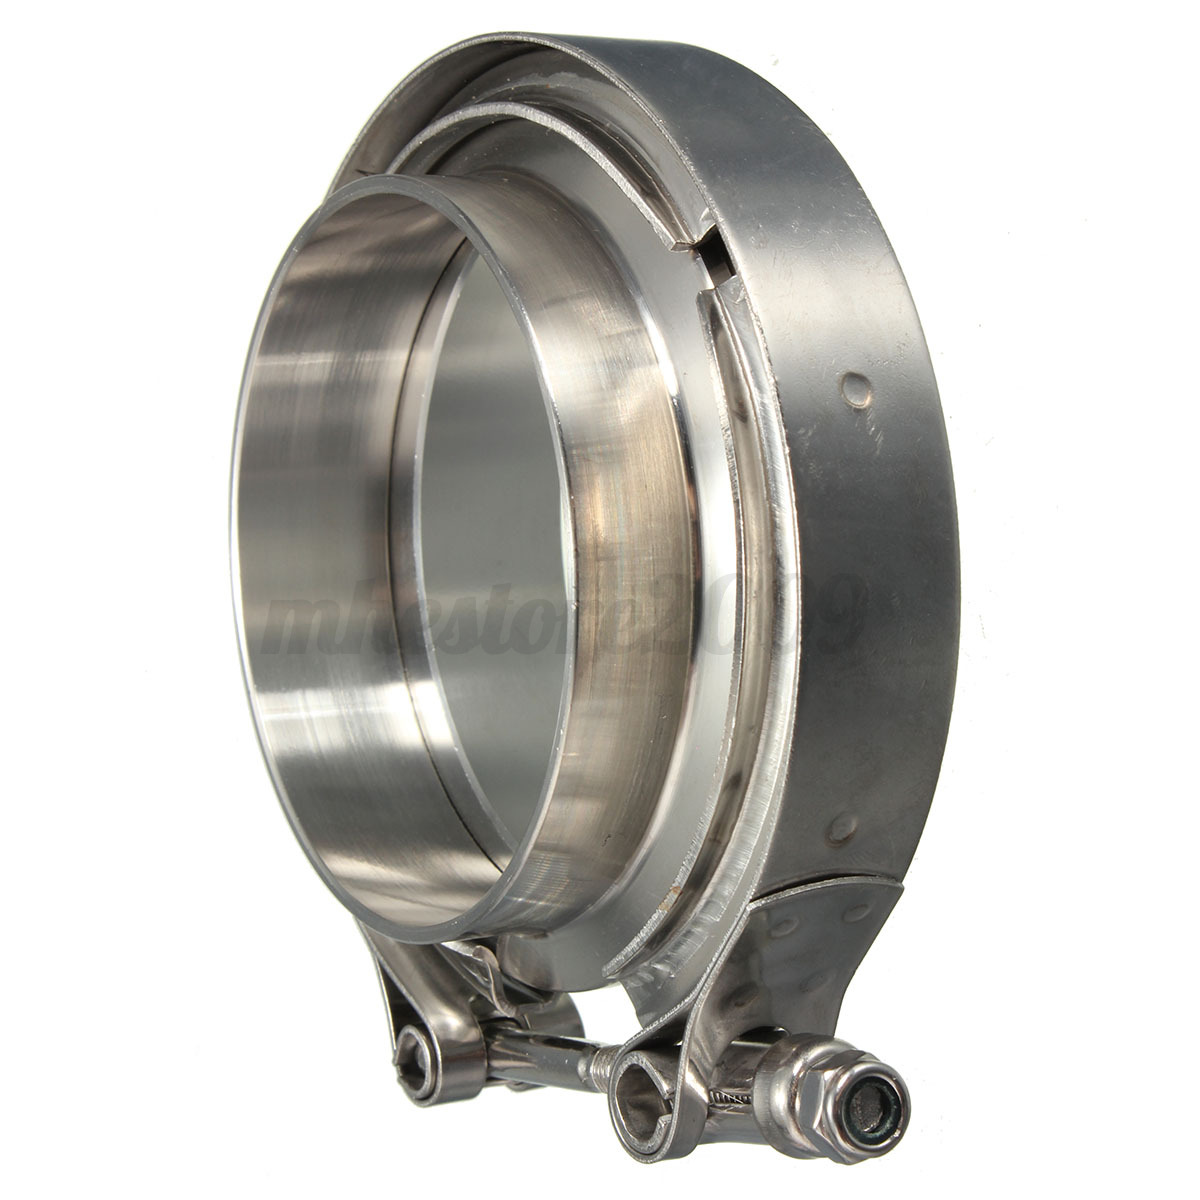 Stainless steel quot inch innet v band clamp flanges